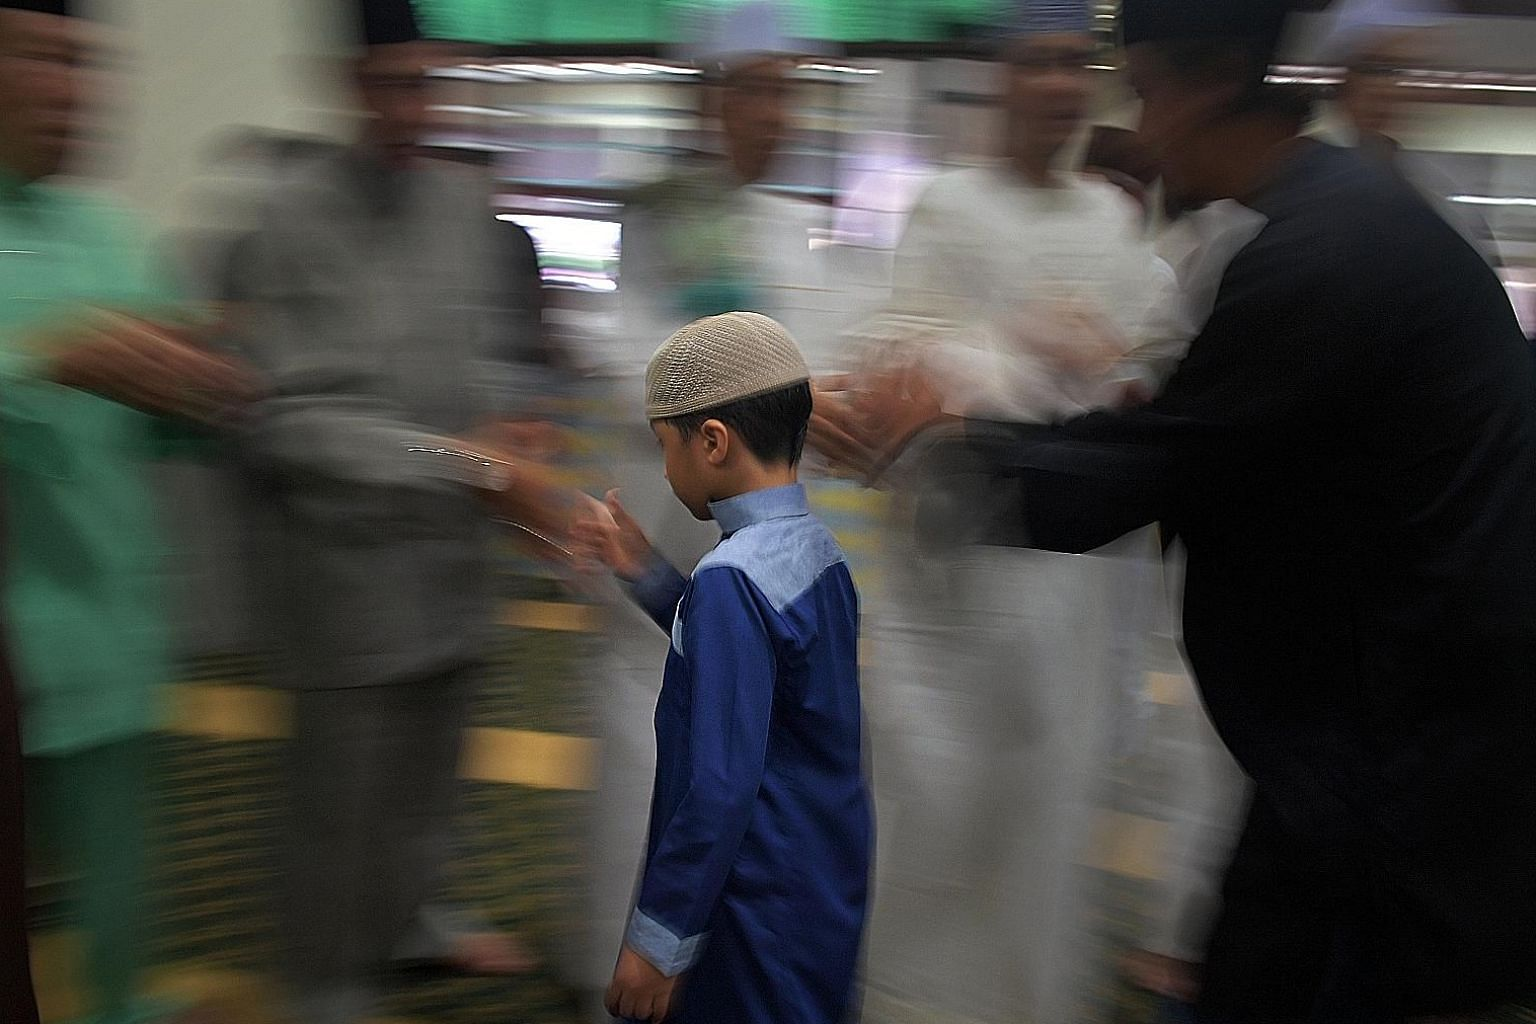 A boy paying his respects to his elders after prayers at the mosque yesterday. Some 850 congregants gathered there to mark the end of the annual haj pilgrimage.